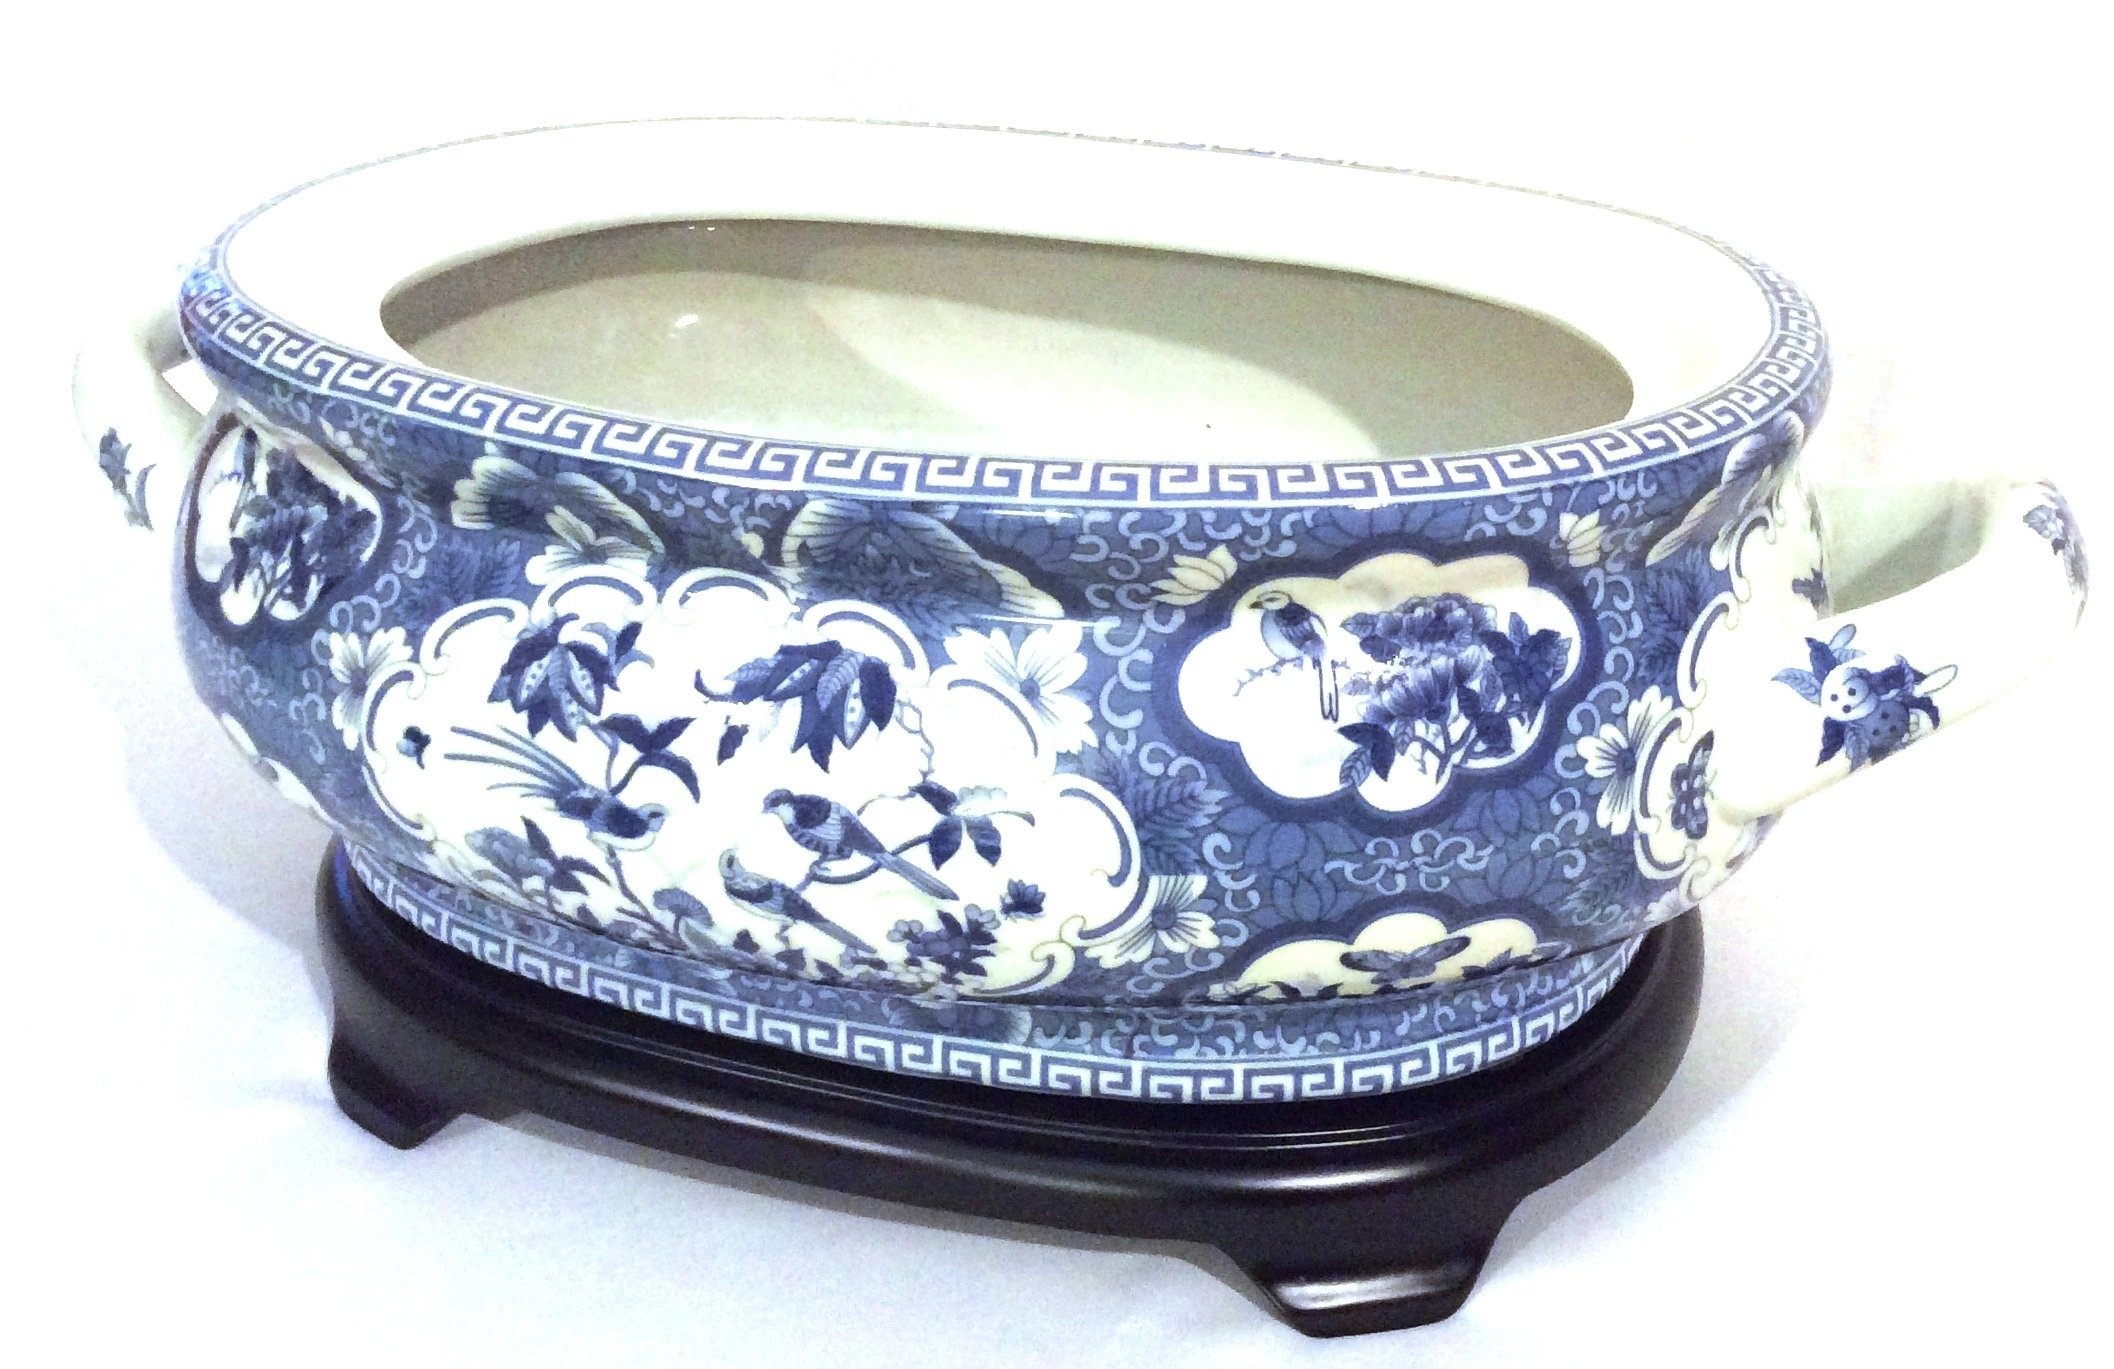 Blue and White Bird and Flower Porcelain Footbath with Base by Asian Caravan